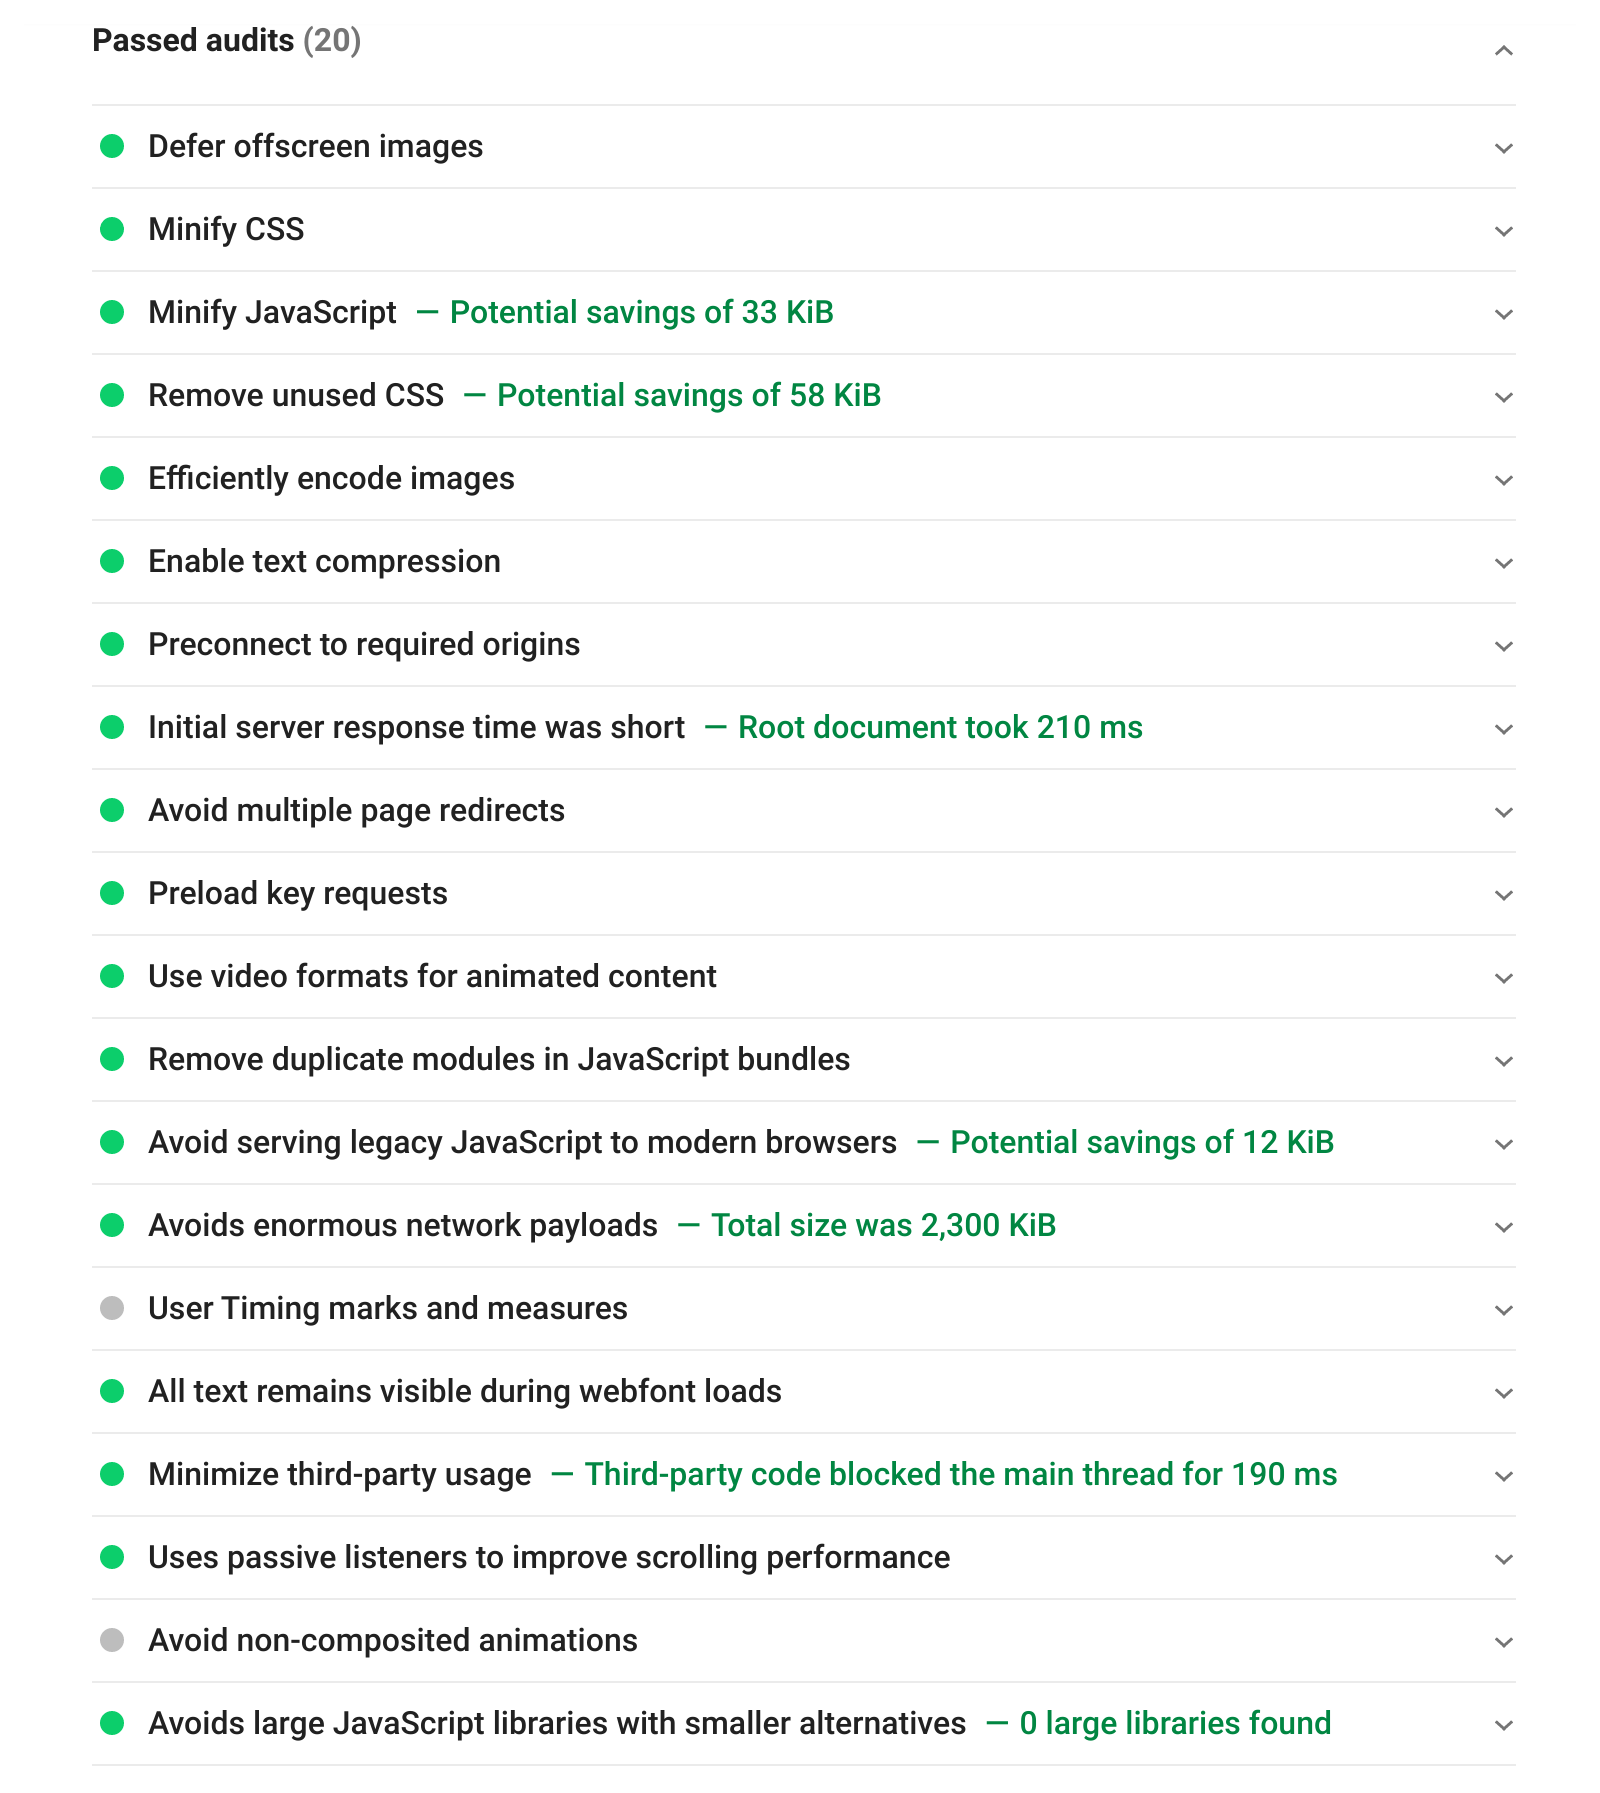 Passed Audits section in Google PageSpeed Insights